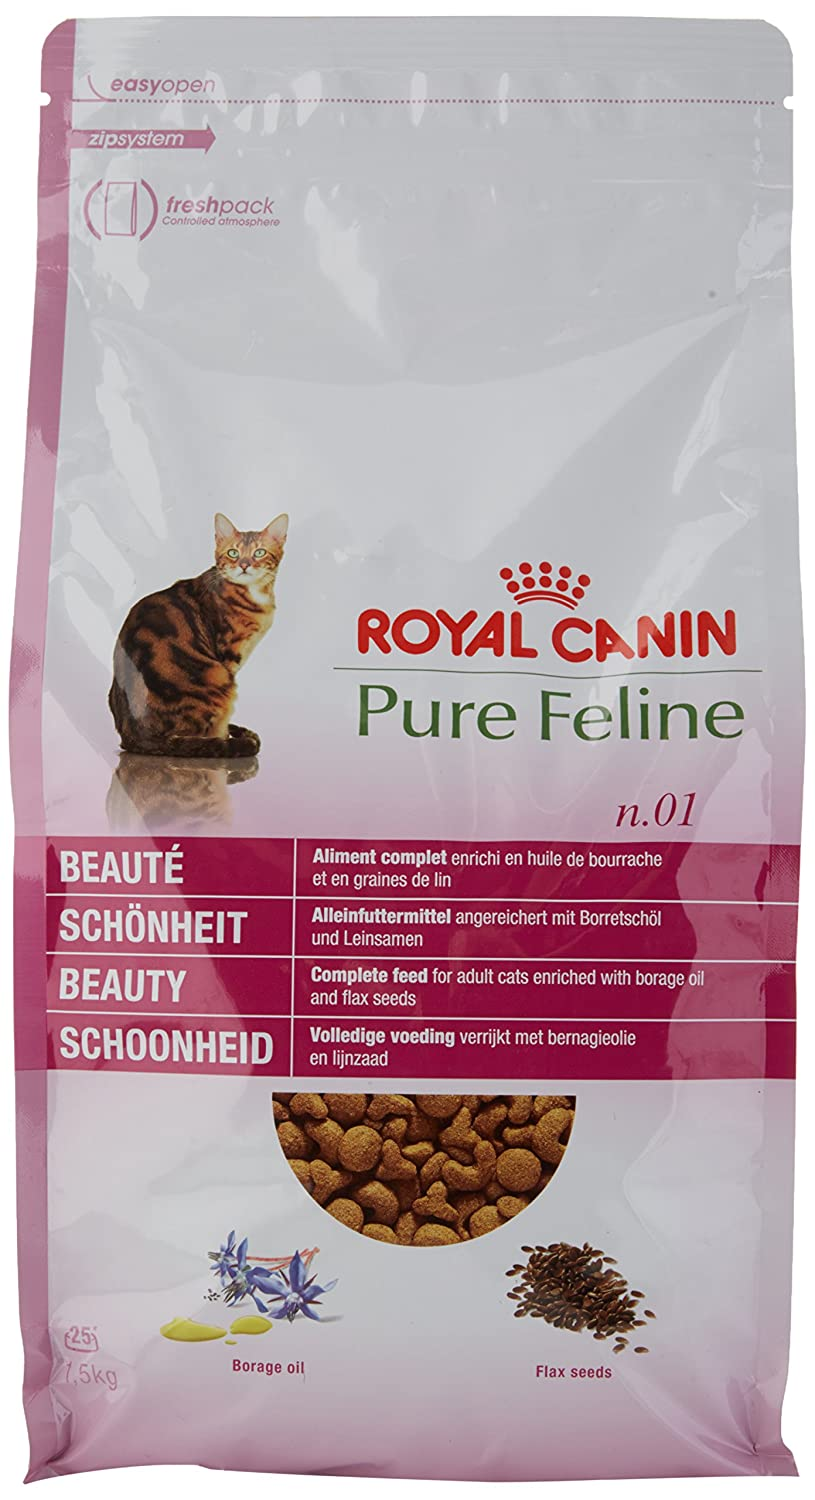 Royal Canin pienso para gatos Pure Feline Belleza: Amazon.es: Productos para mascotas